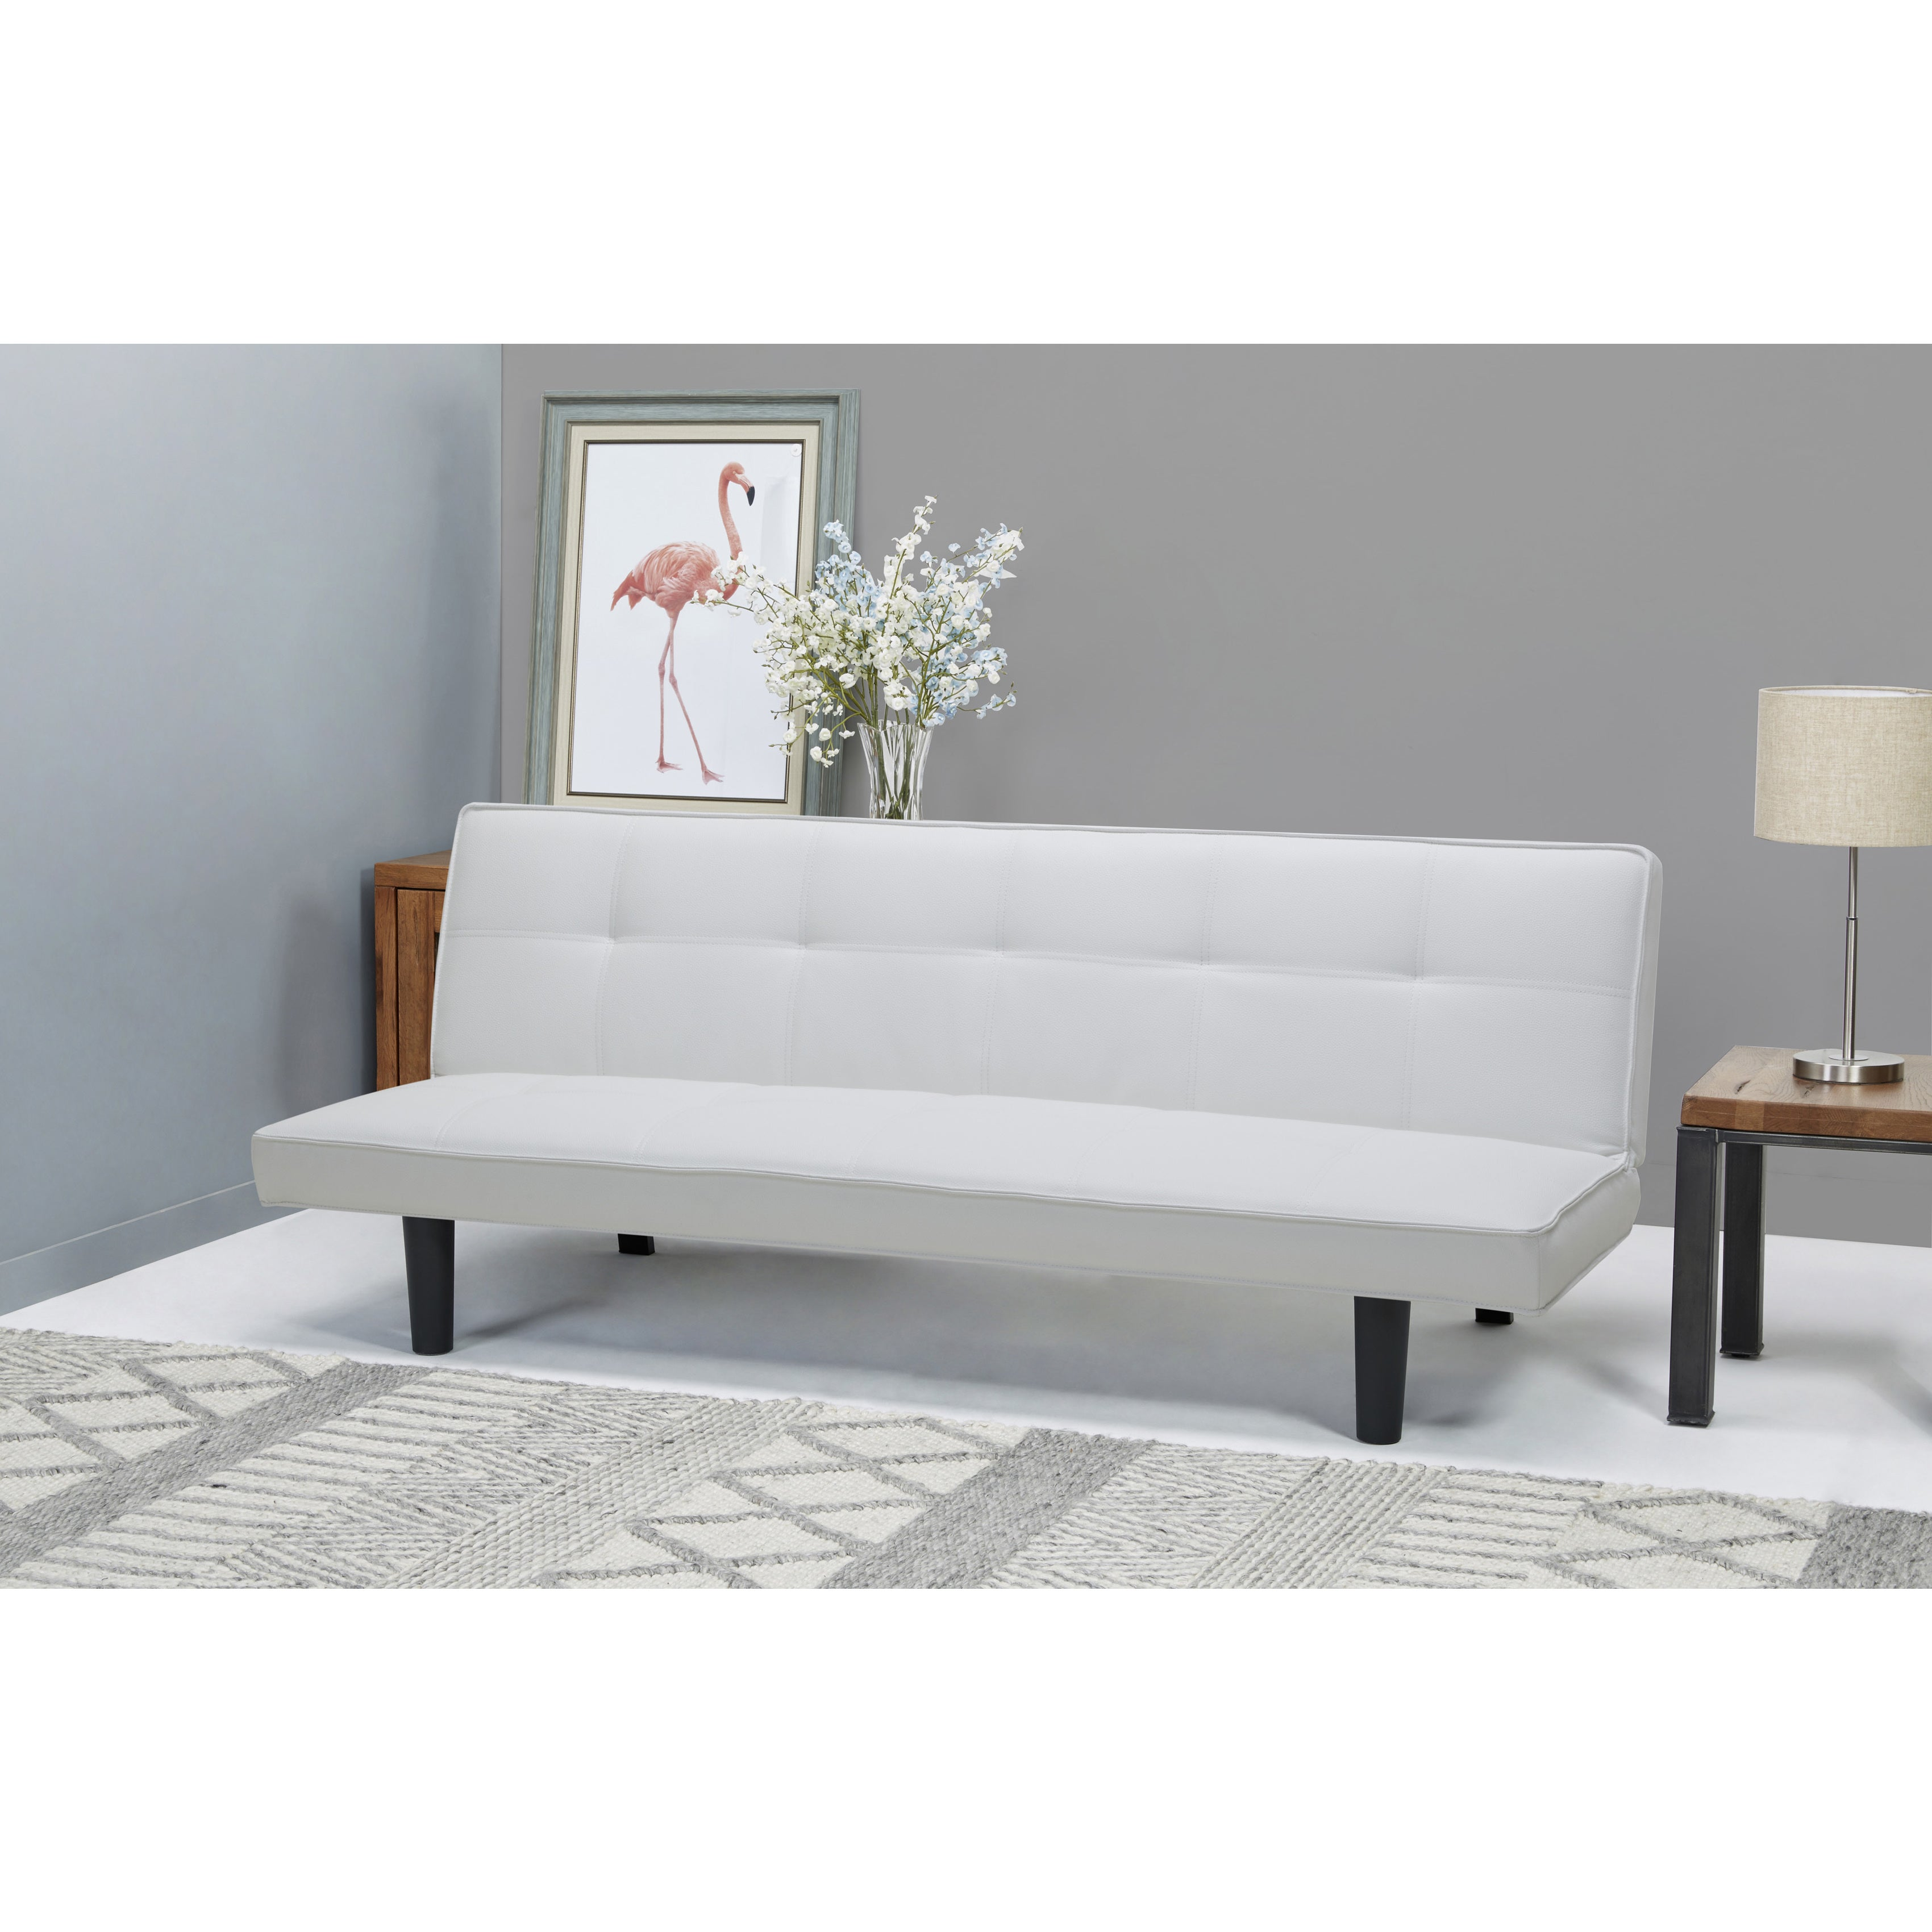 Sofa Hudson hudson white convertible sofa bed free shipping today overstock